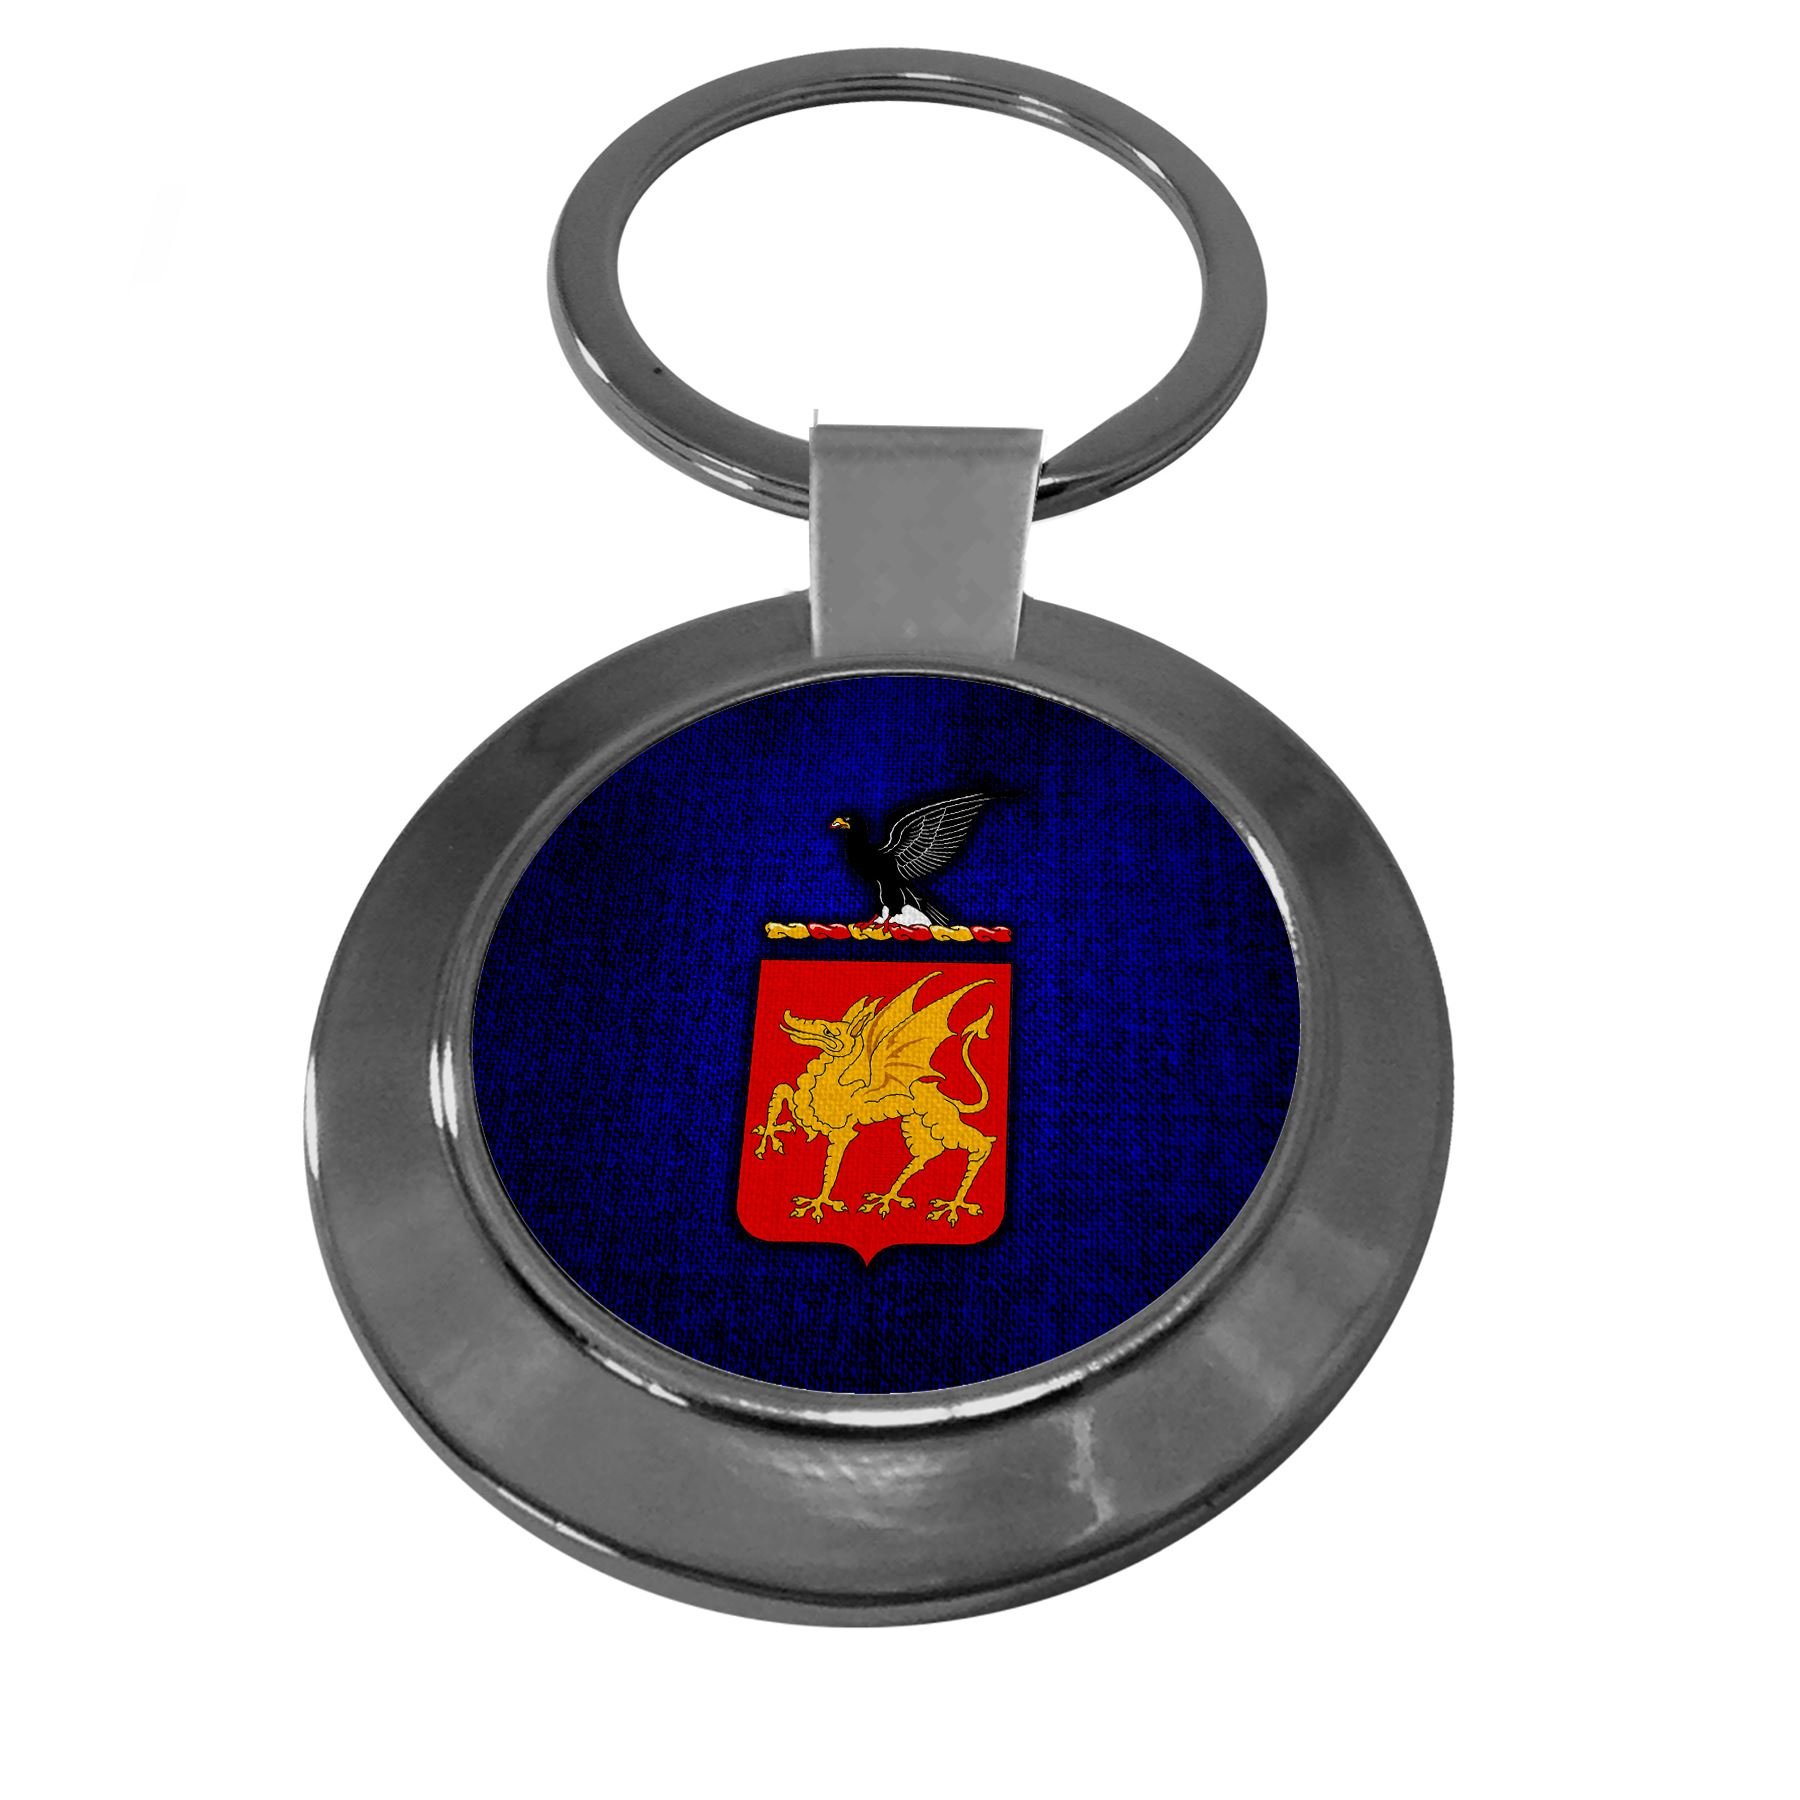 Premium Key Ring with U.S. Army 1st Cavalry Regiment, coat of arms